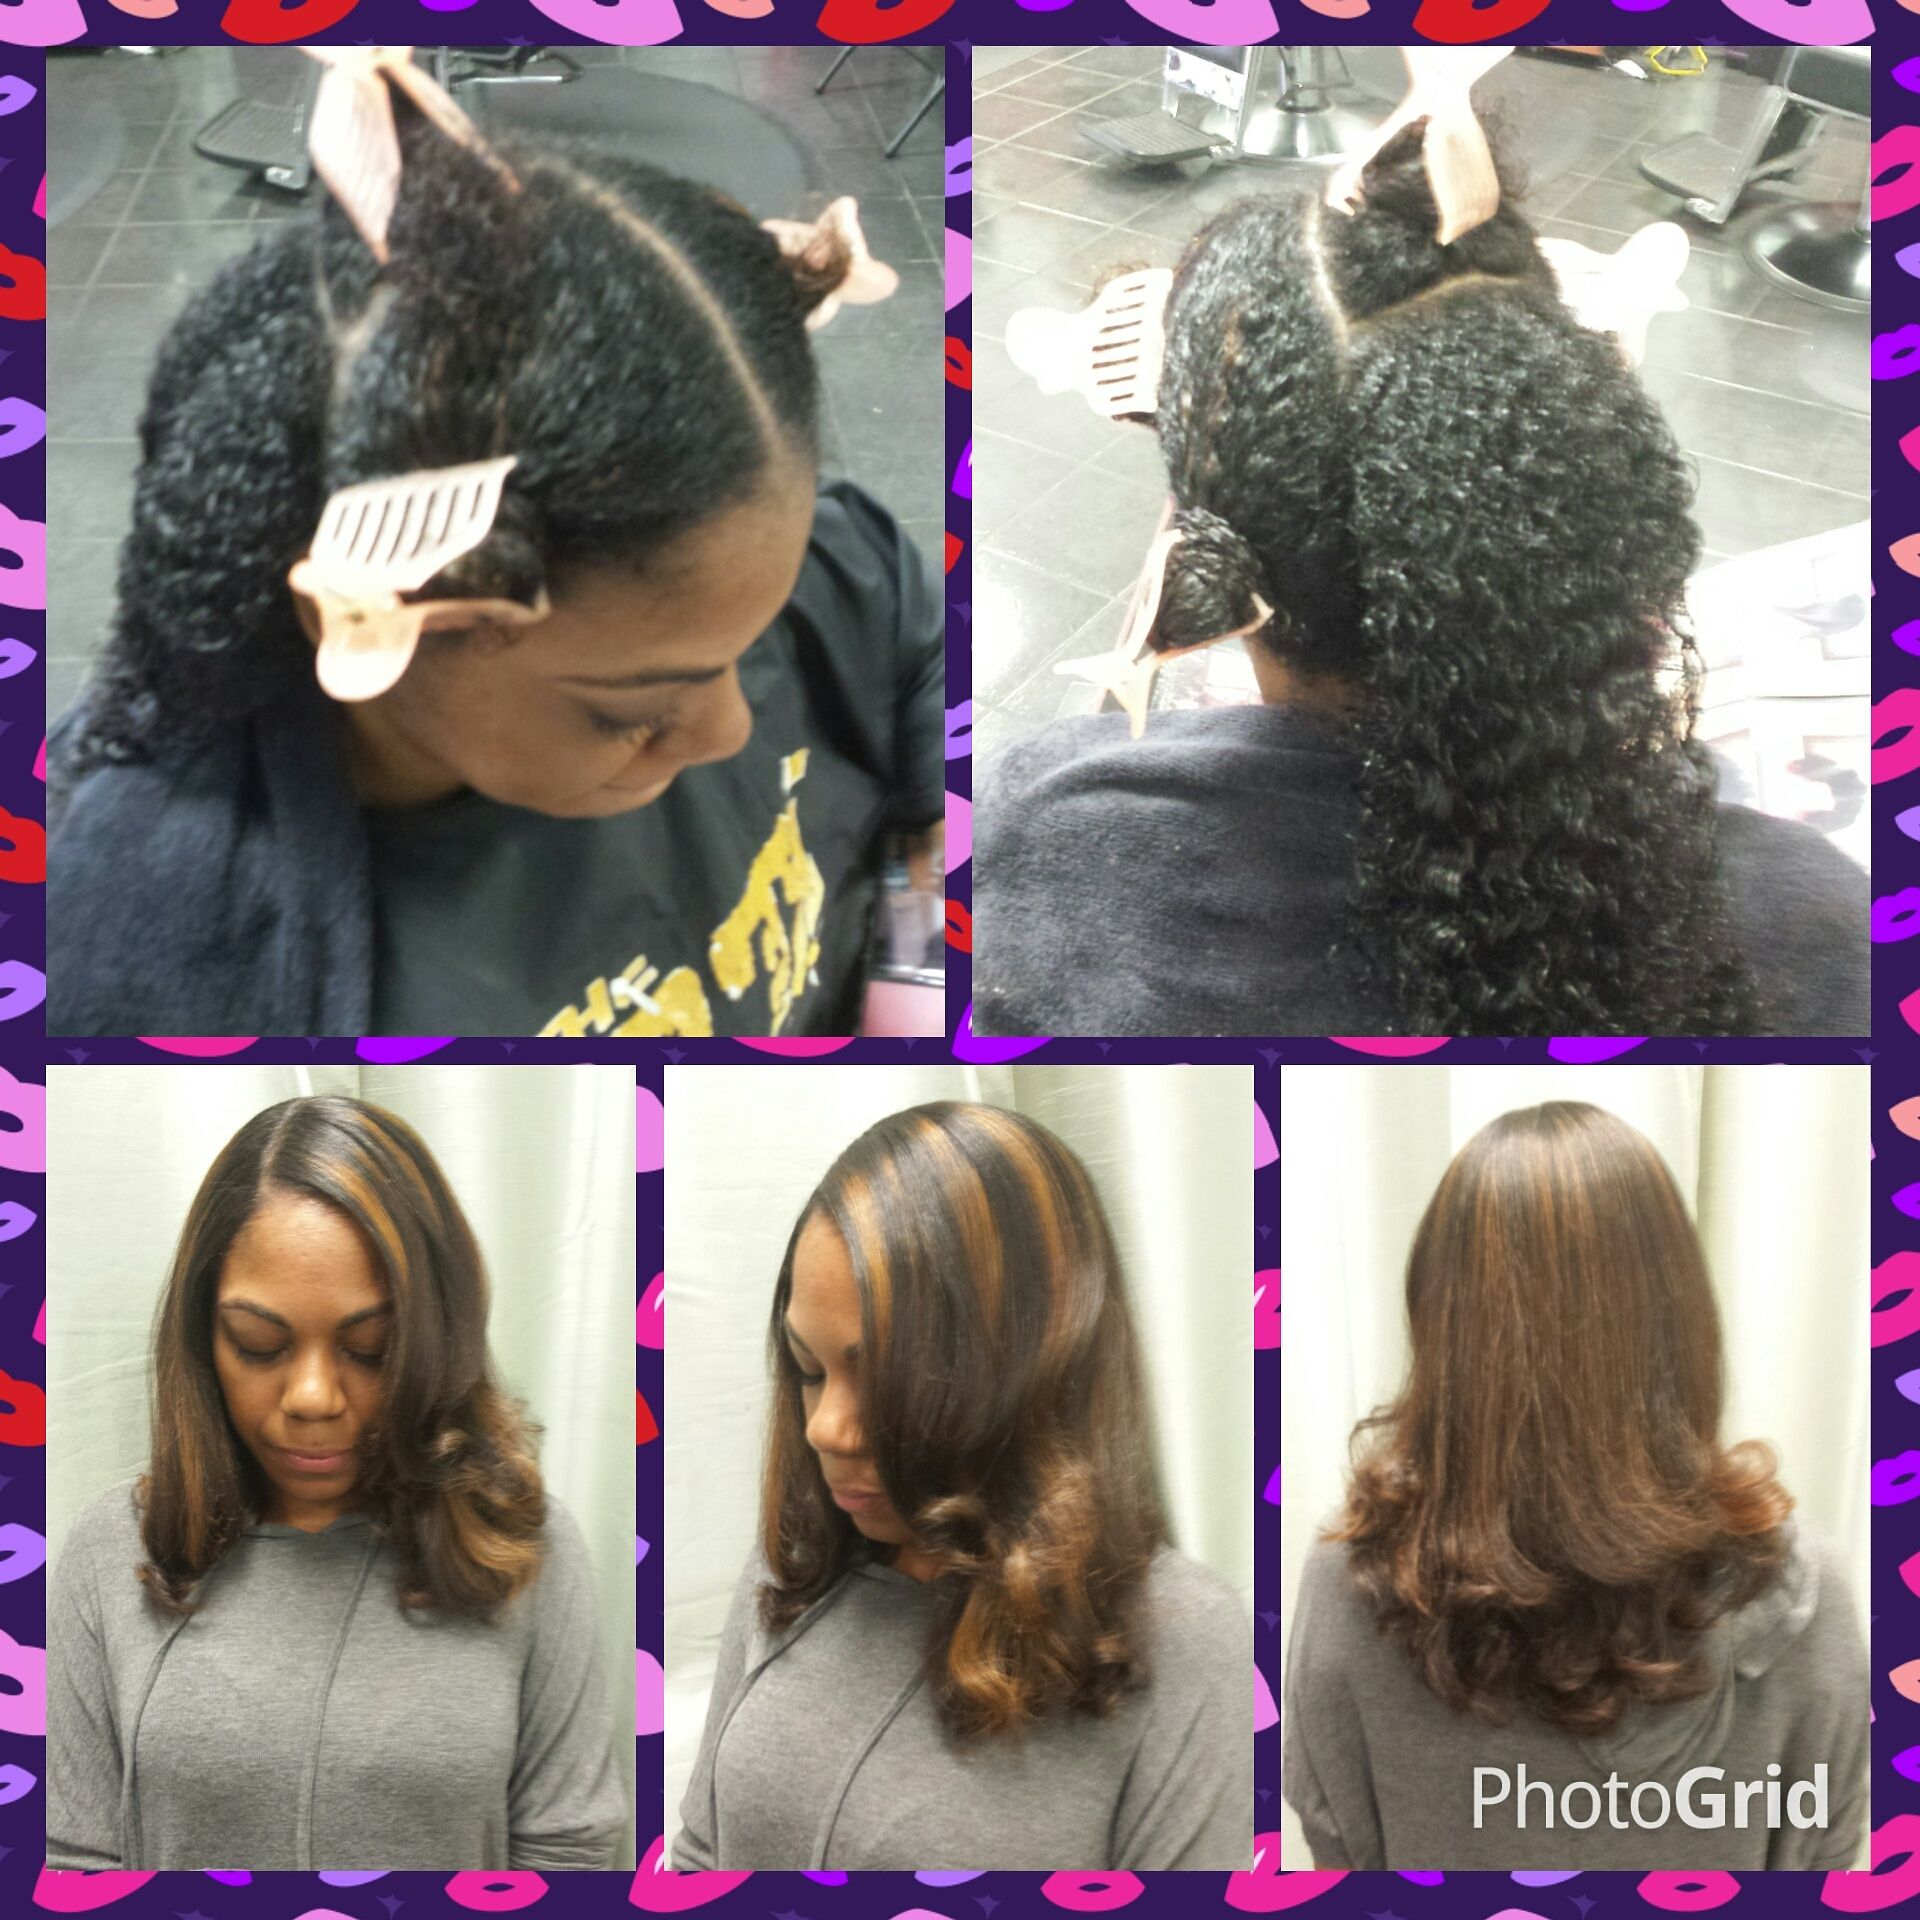 Hair coloring on natural hair at Trendz by Tammy Hair Salon Houston